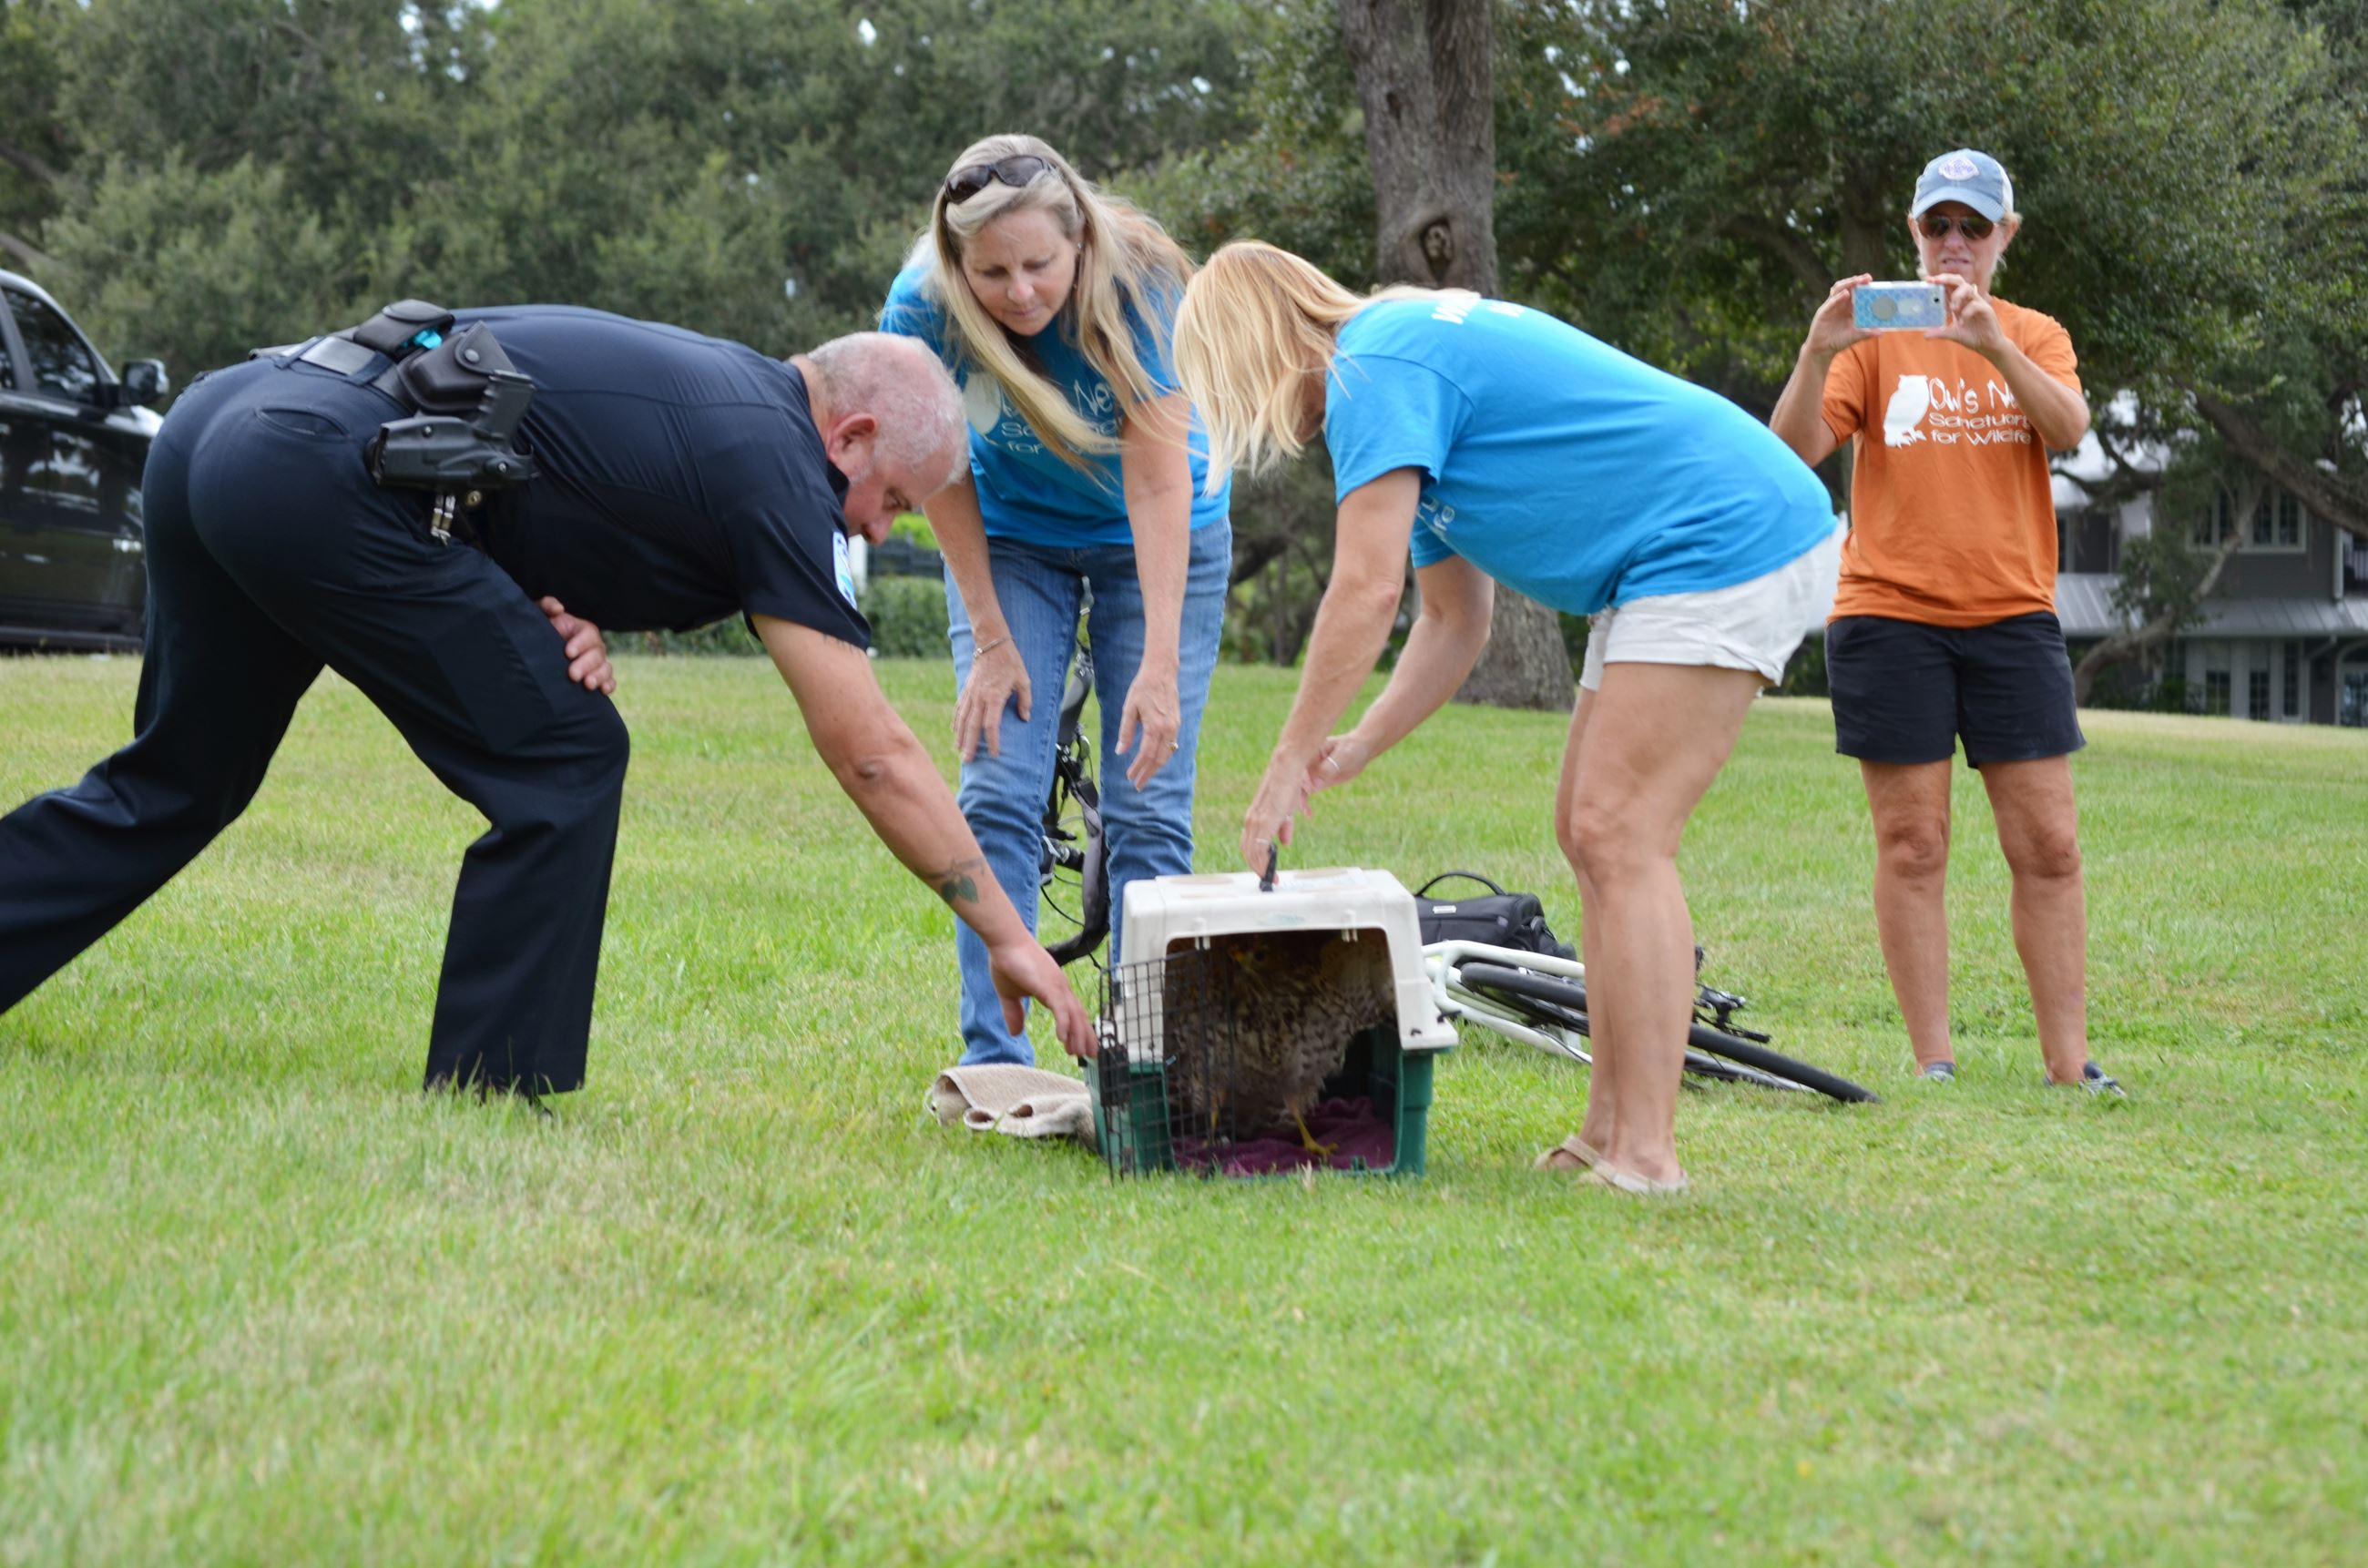 Belleair Officer Albertson partners with residents to release a rehabilitated hawk back into Belleai